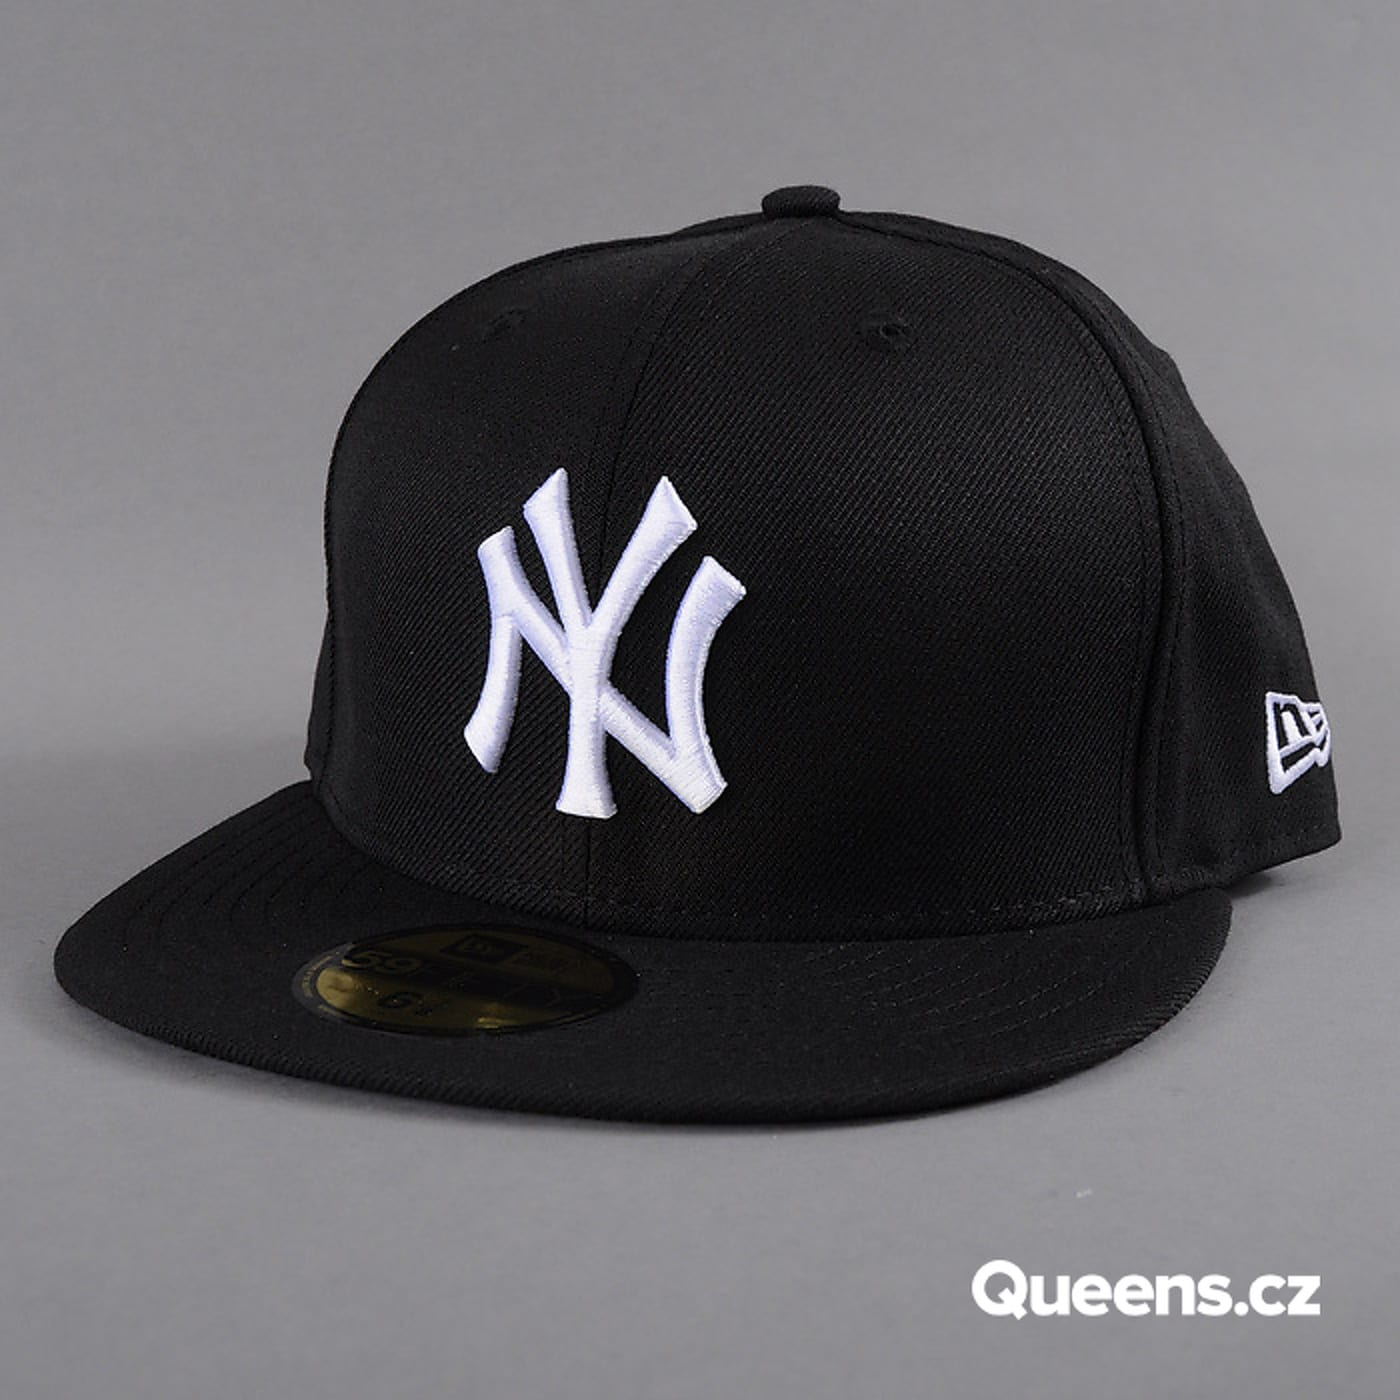 New Era MLB Basic NY black / white